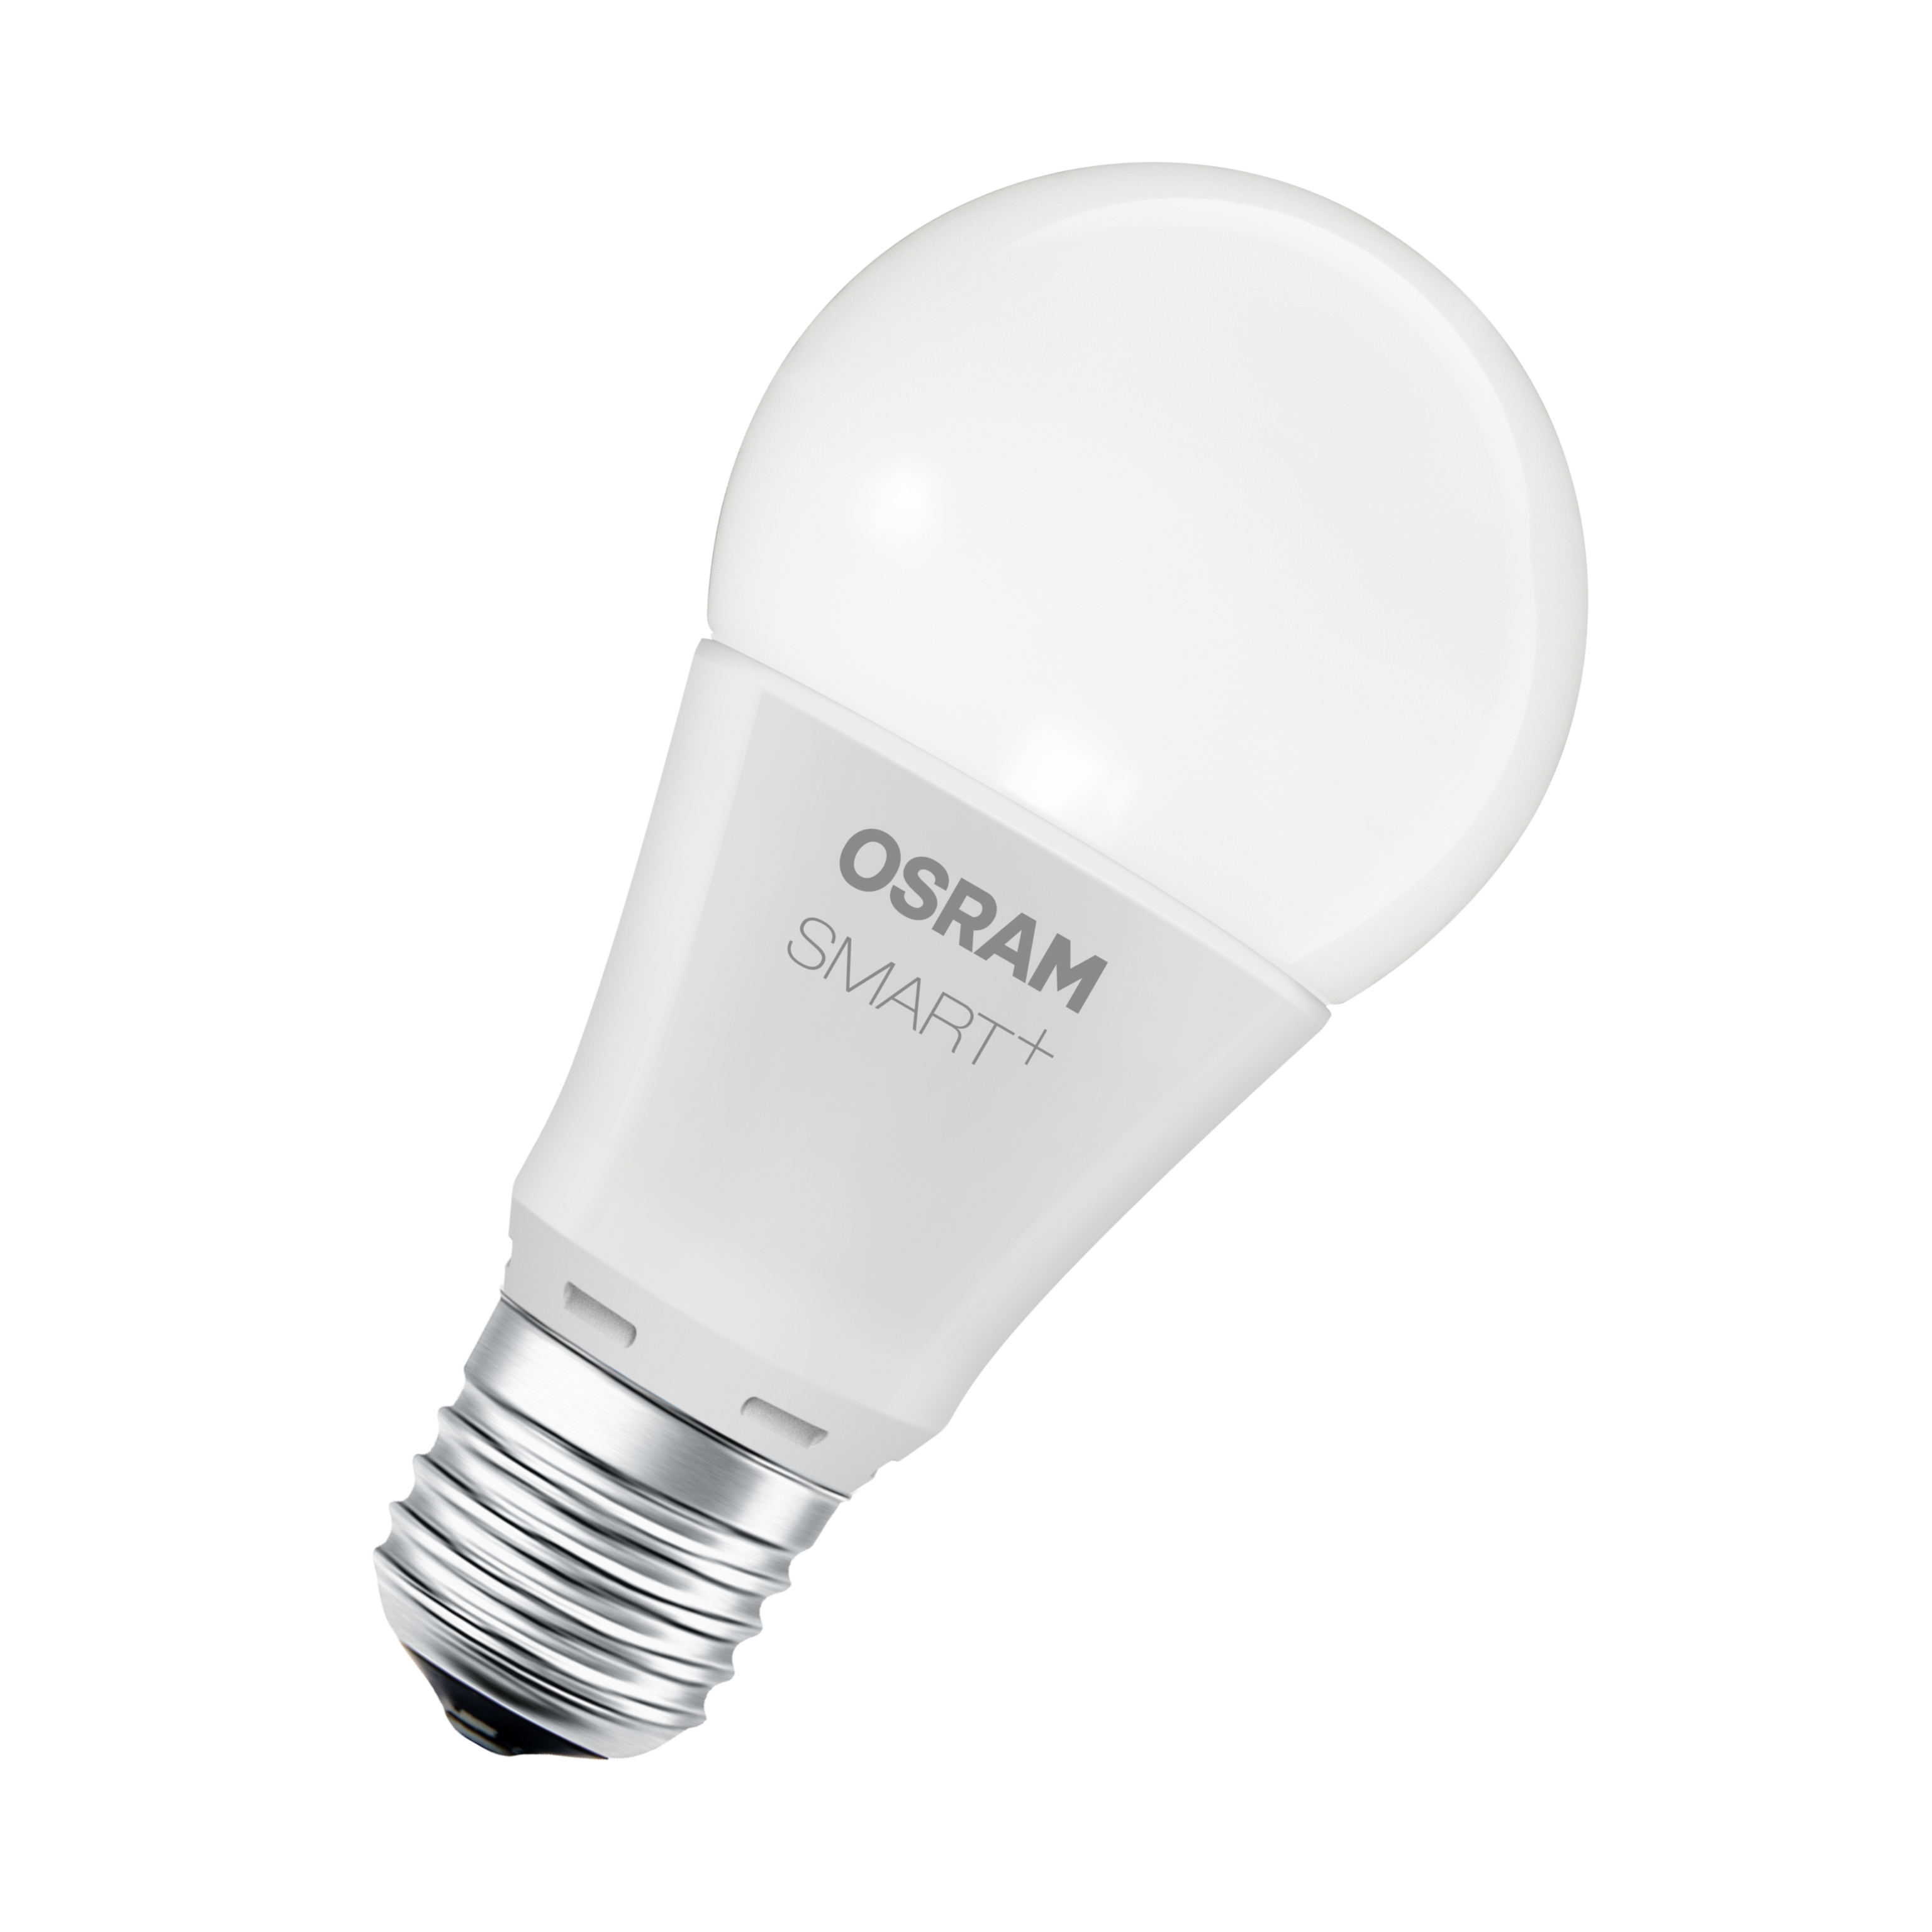 Osram E27 Lamp 8.5W Dimmable Classic